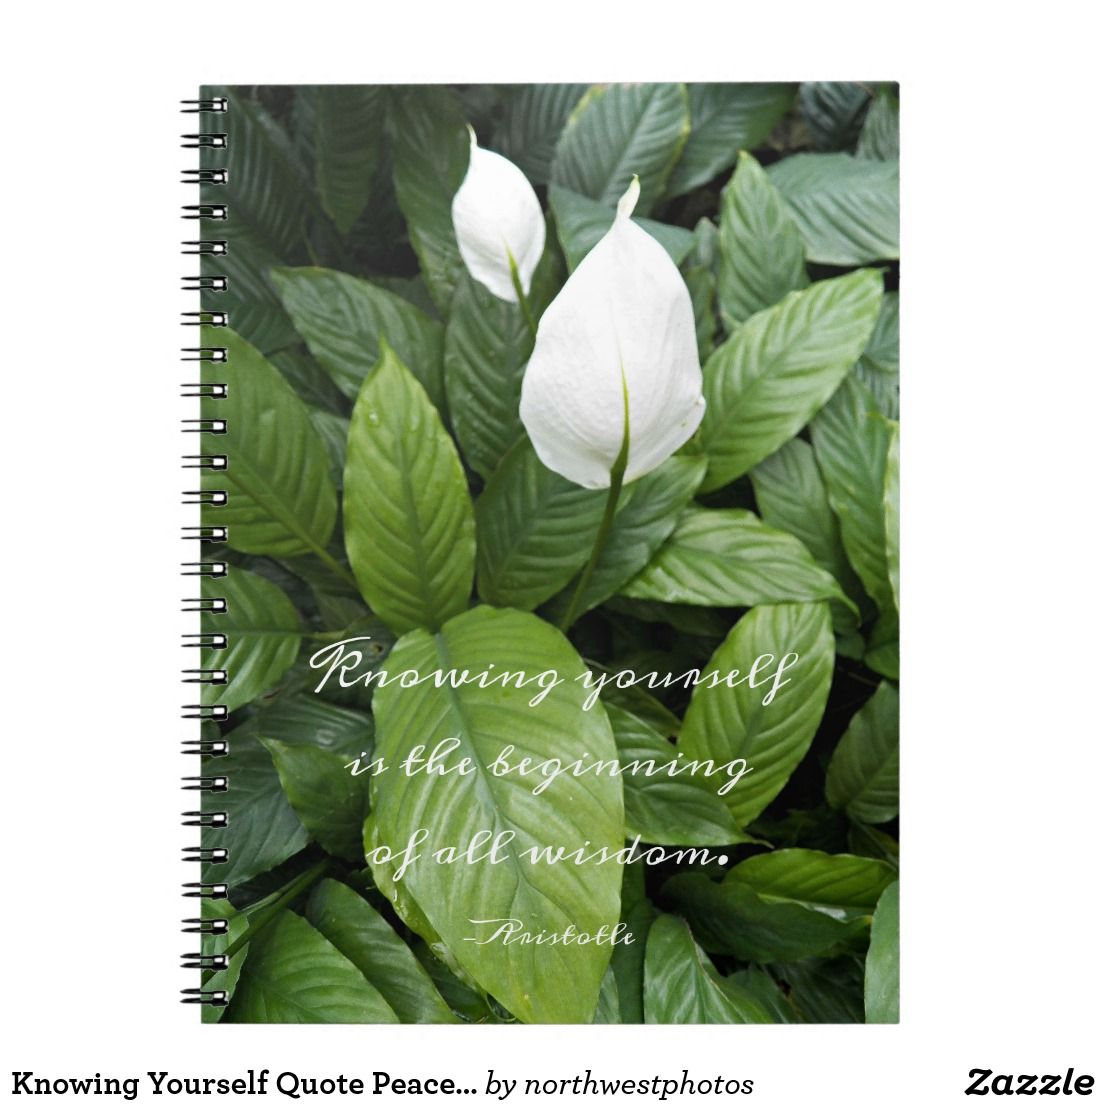 Aristotle Quote Peace Lily Floral Photo Notebook Zazzle